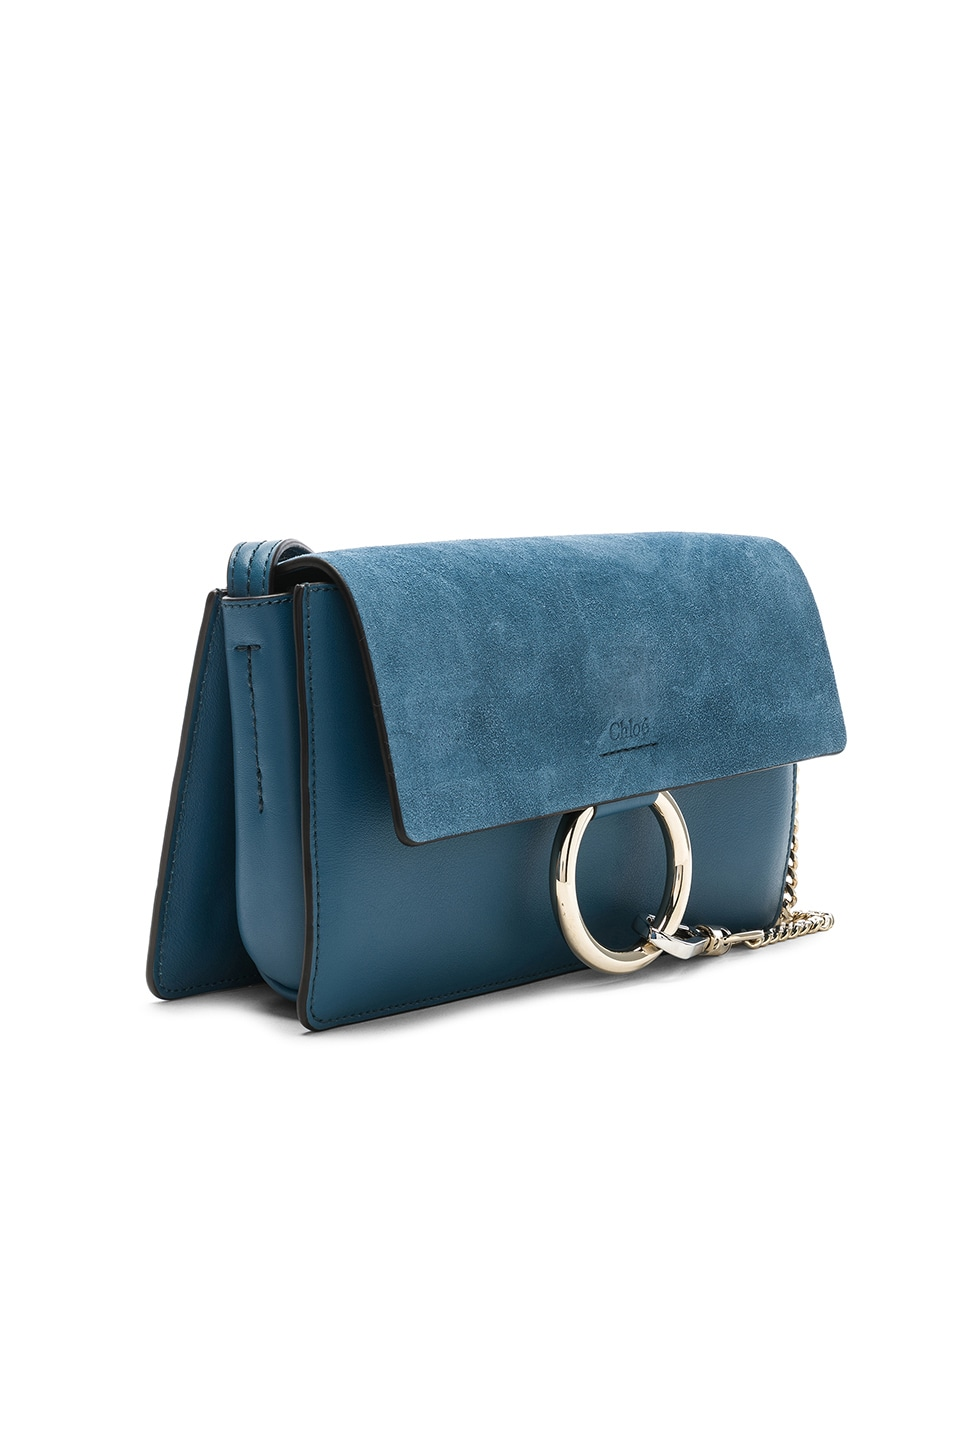 Image 3 of Chloe Small Faye Suede & Calfskin Shoulder Bag in Vinyl Blue